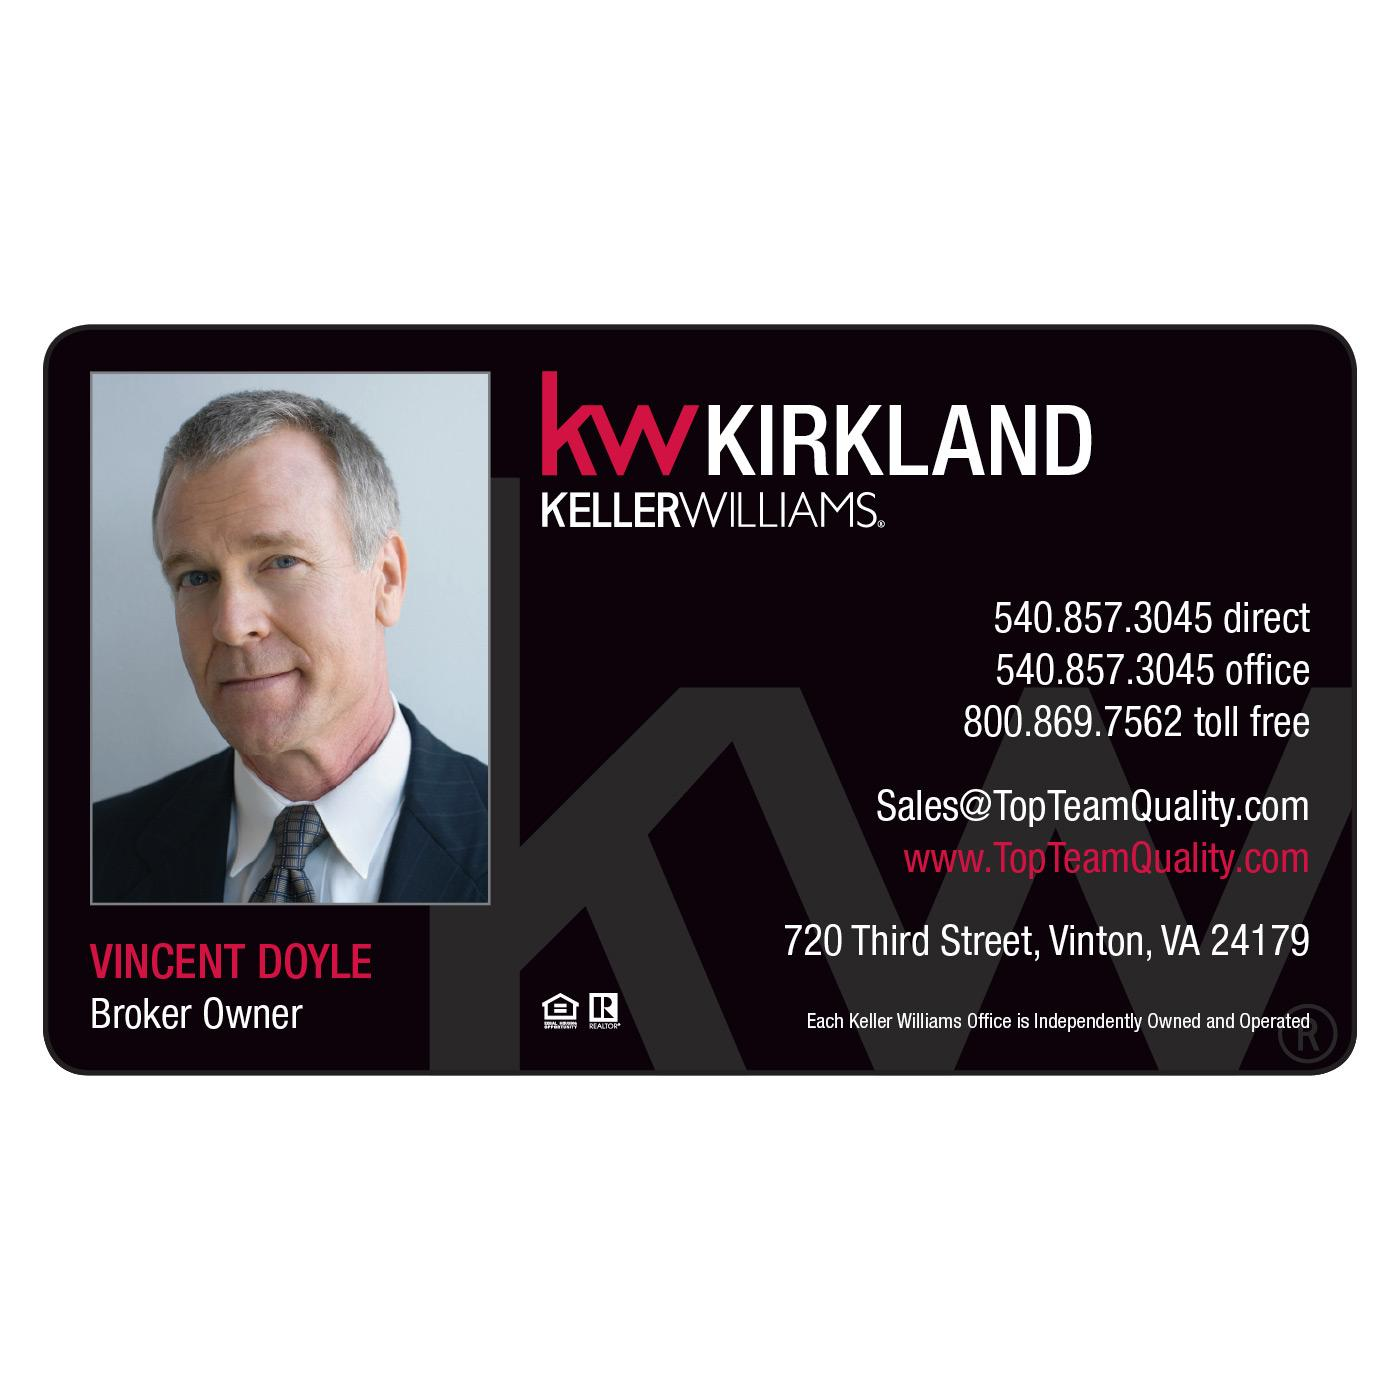 Keller williams magnetic business card magnets usa keller williams magnetic business card colourmoves